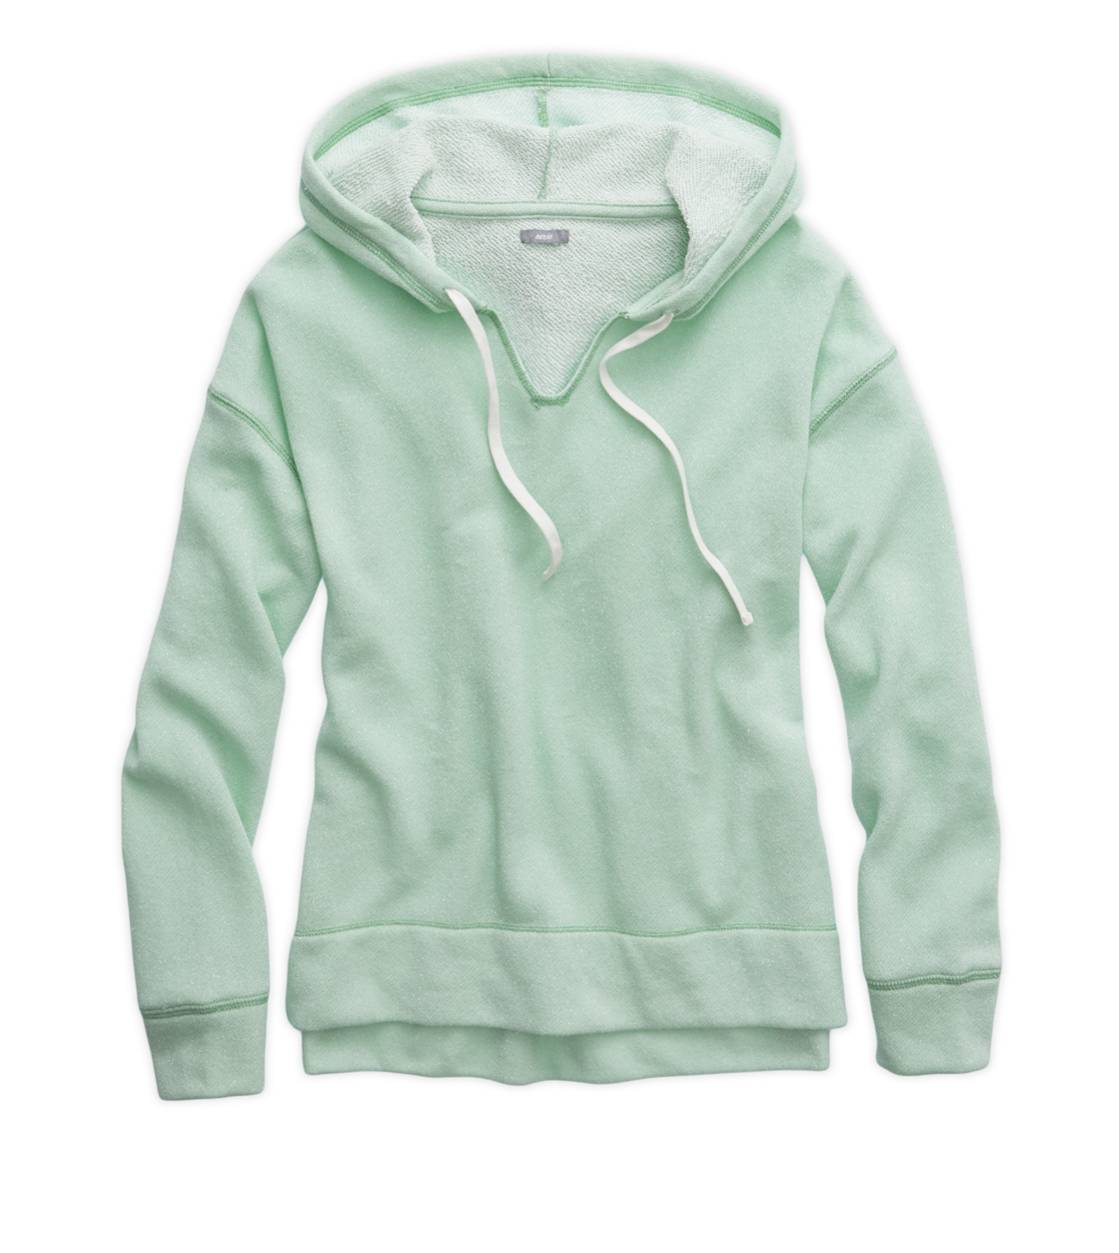 Cupcake Green Aerie Sparkle Hooded Sweatshirt